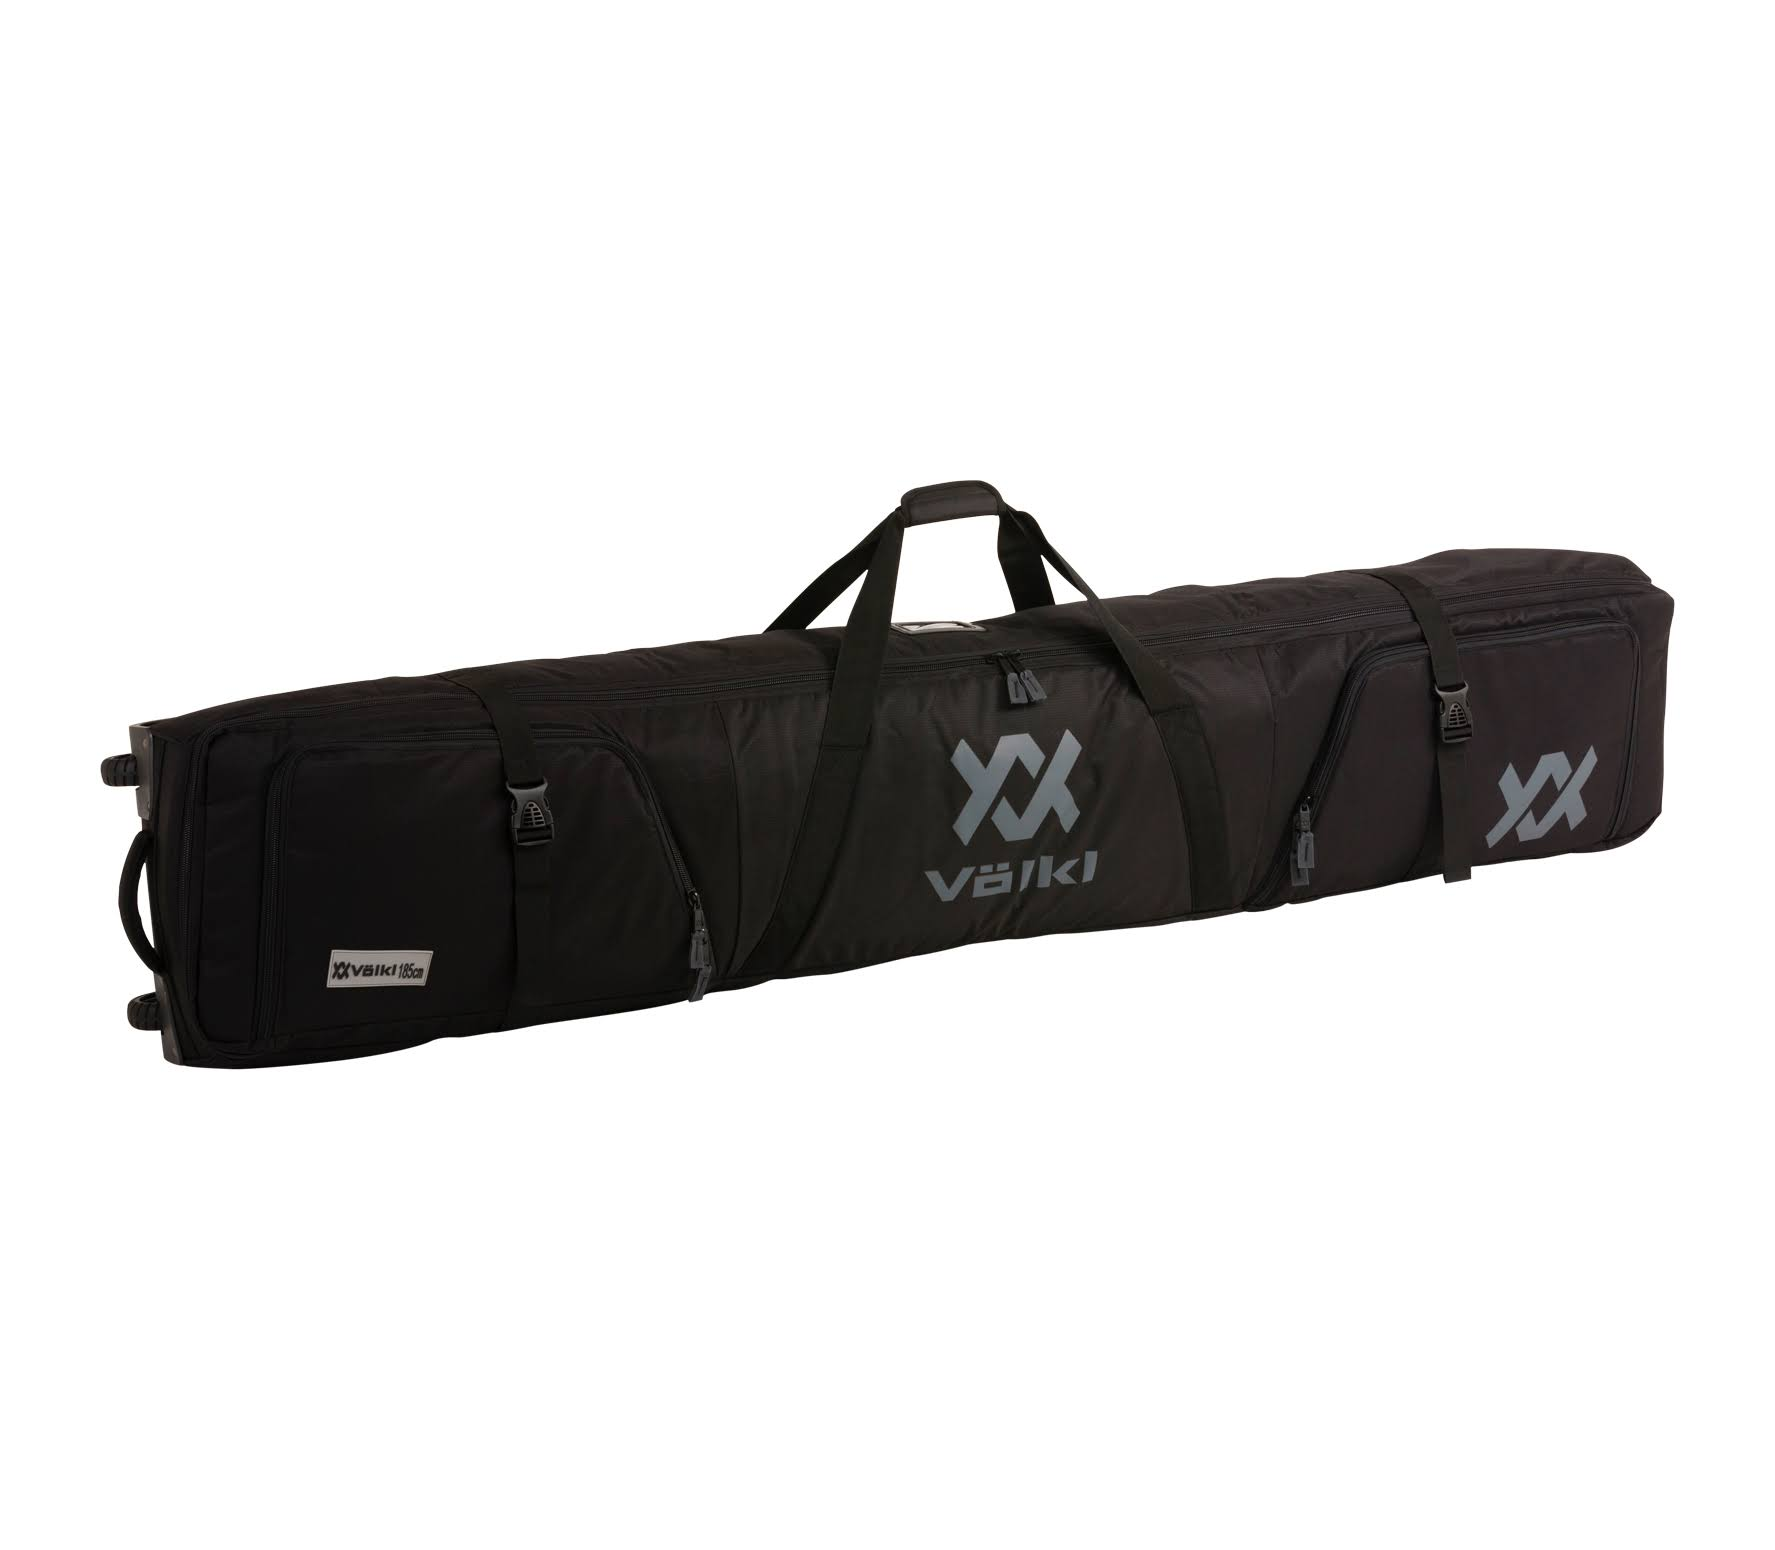 Volkl Double Ski Bag - Black, 185cm